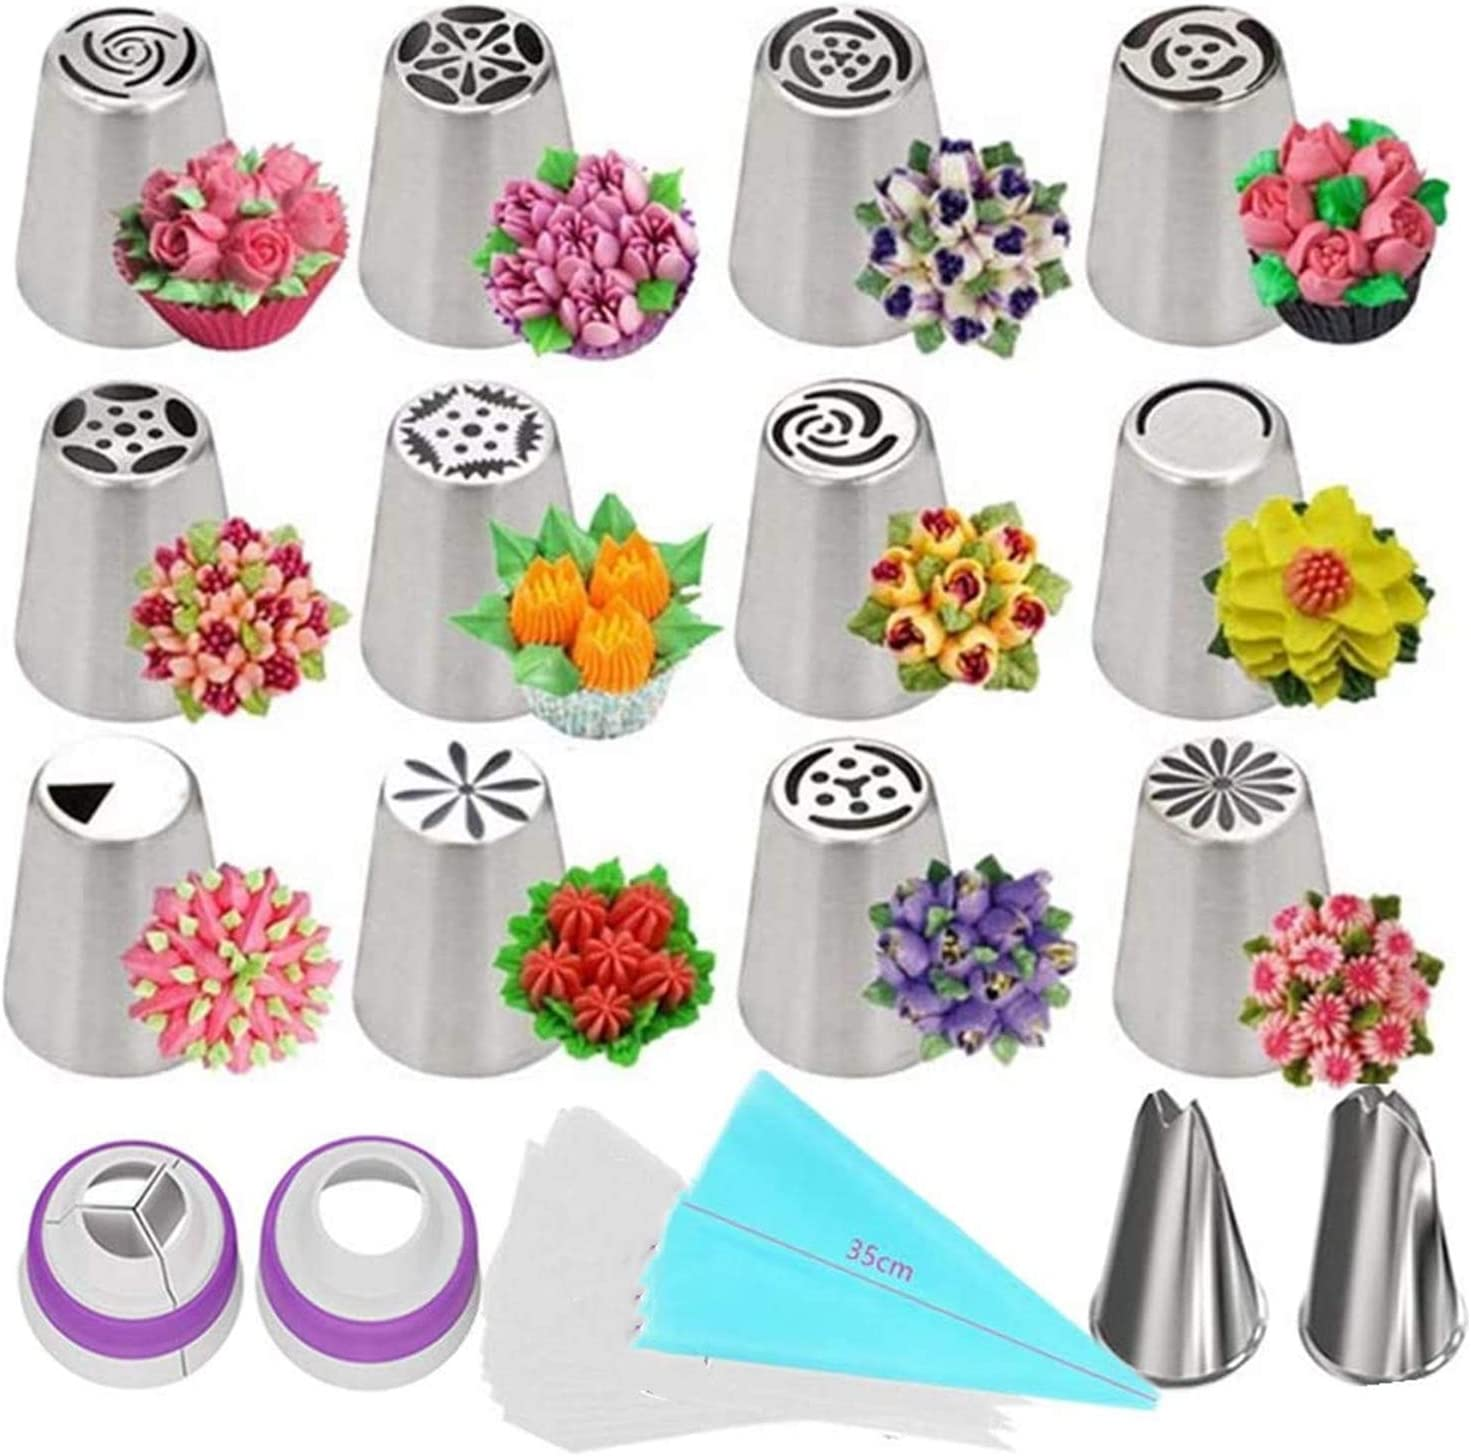 Russian Piping Tips Set Decoo 27 Large discharge sale Decorating Supplies Pcs Cake K Excellent